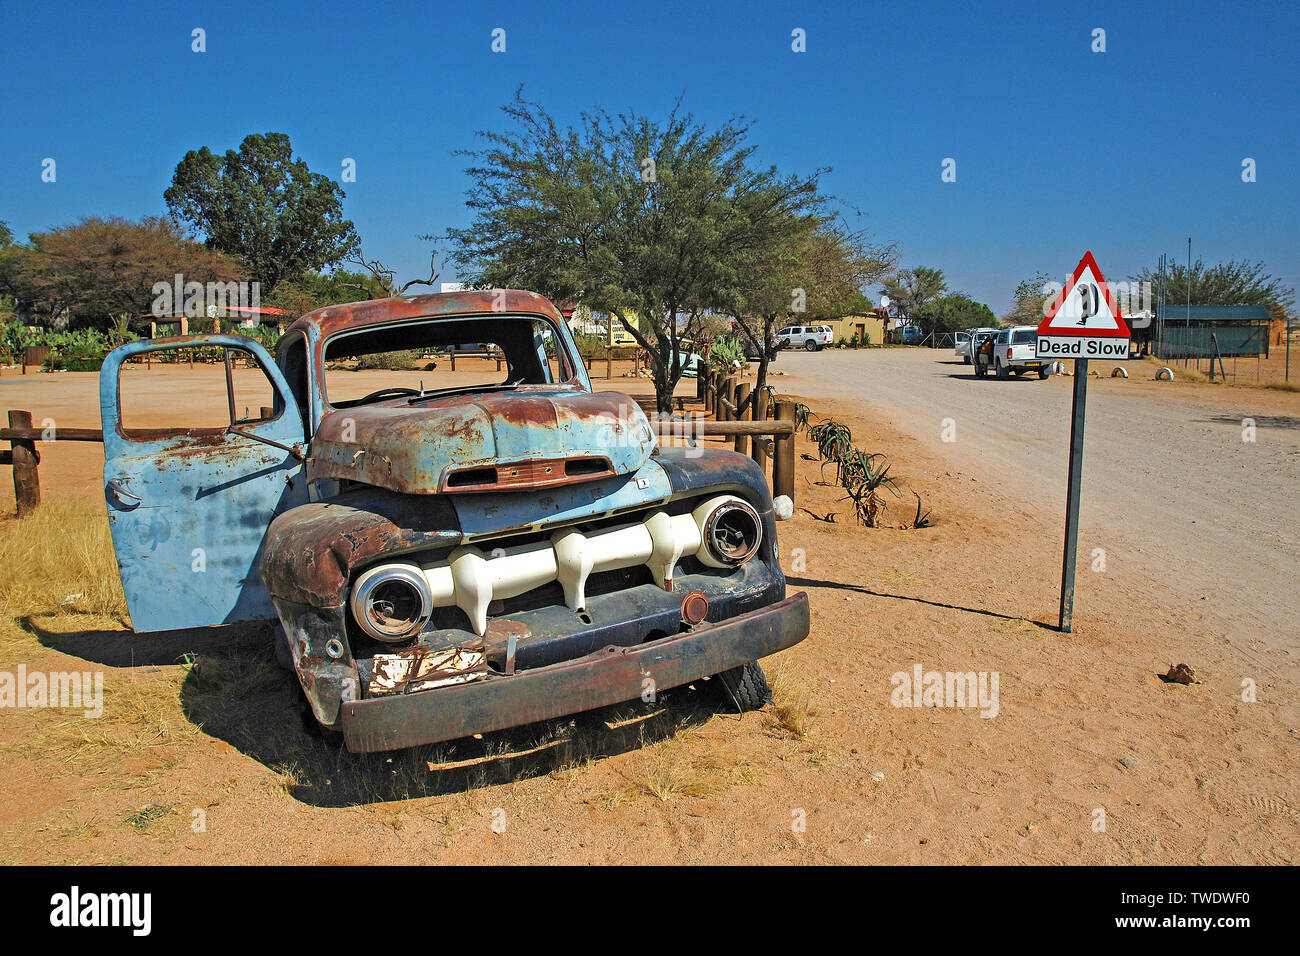 Old truck wreck at the road of the town Solitaire, Namibia, Africa Stock Photo